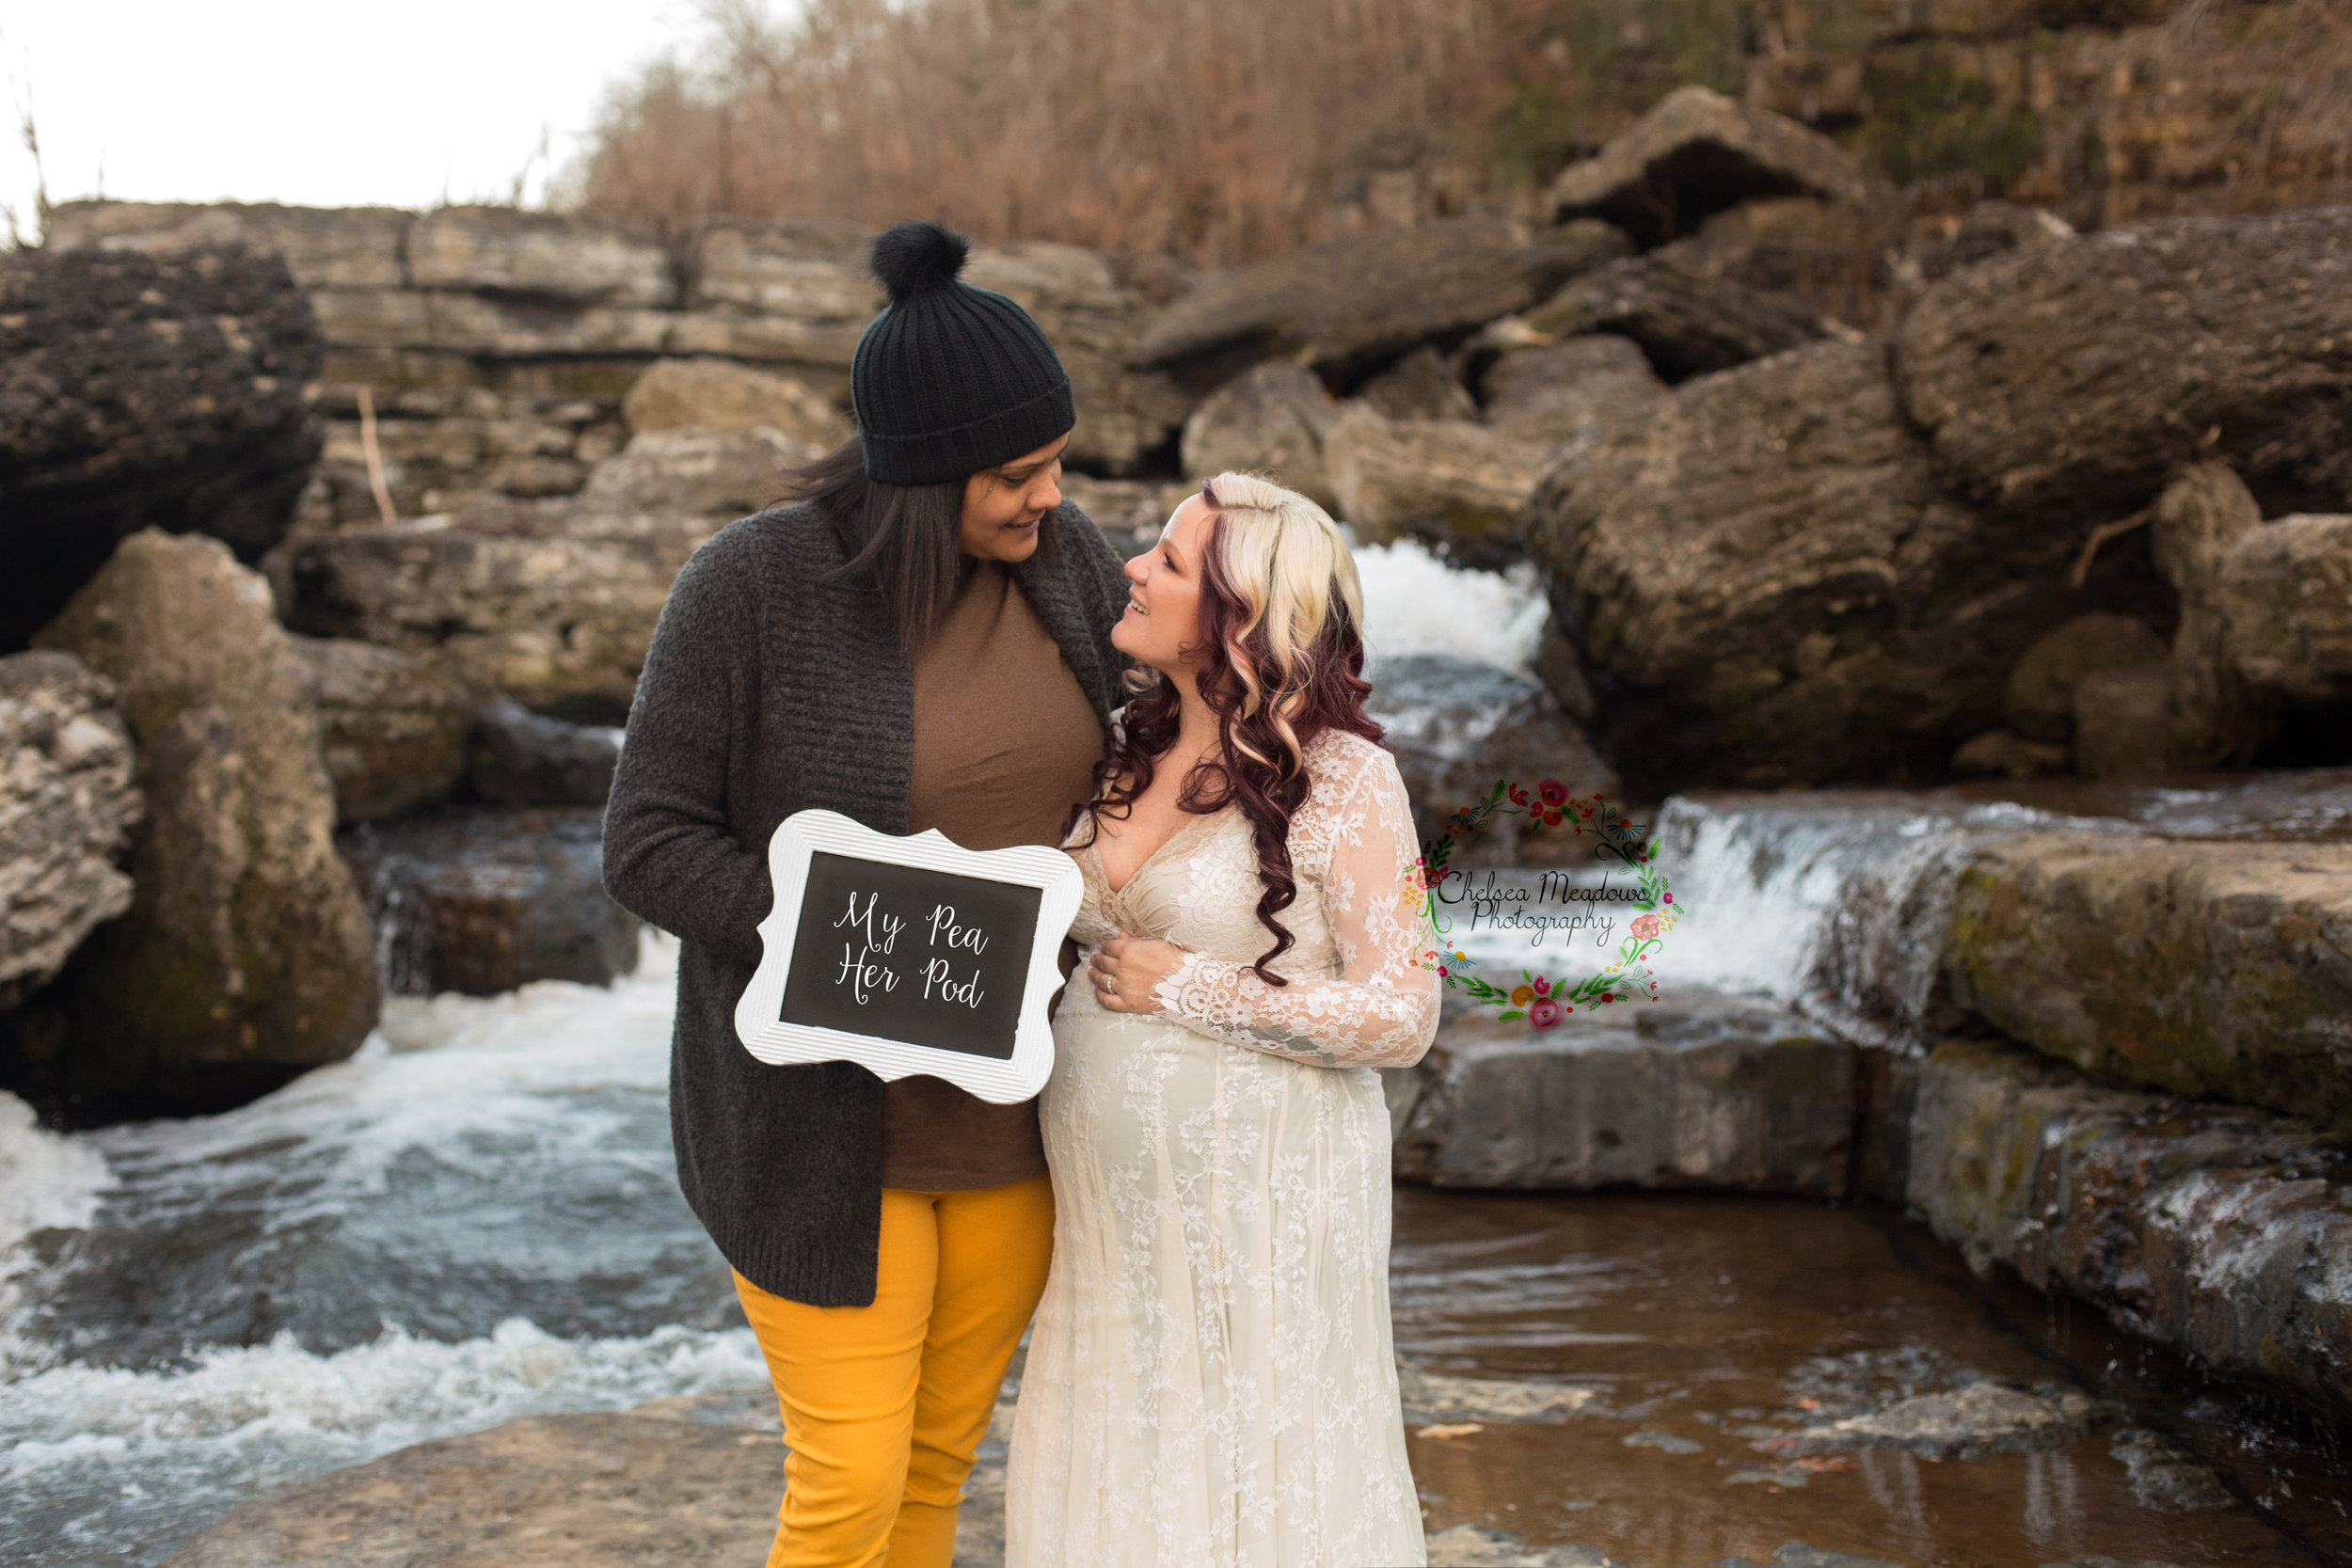 Olivia & Kim Maternity Session - Nashville Maternity Photographer - Chelsea Meadows Photography (70).jpg